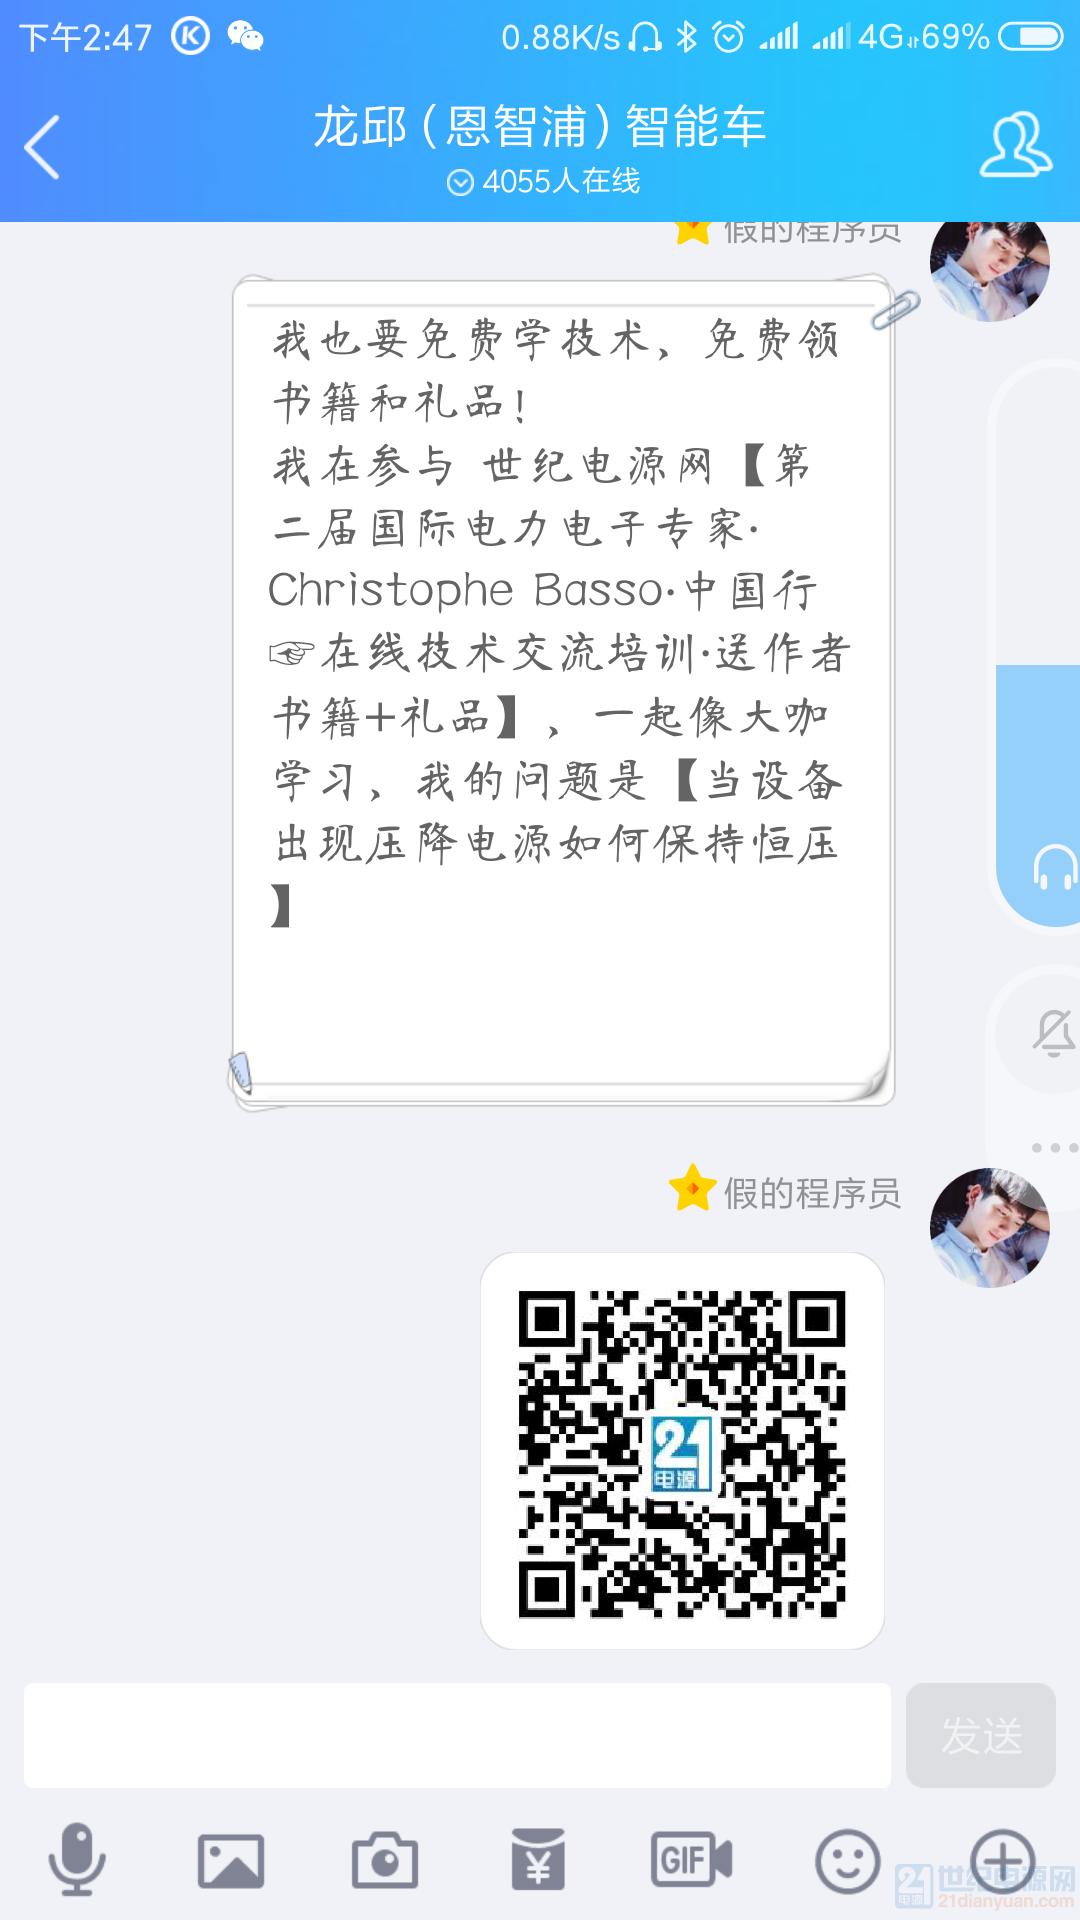 Screenshot_2018-10-12-14-47-45-439_com.tencent.mobileqq.png